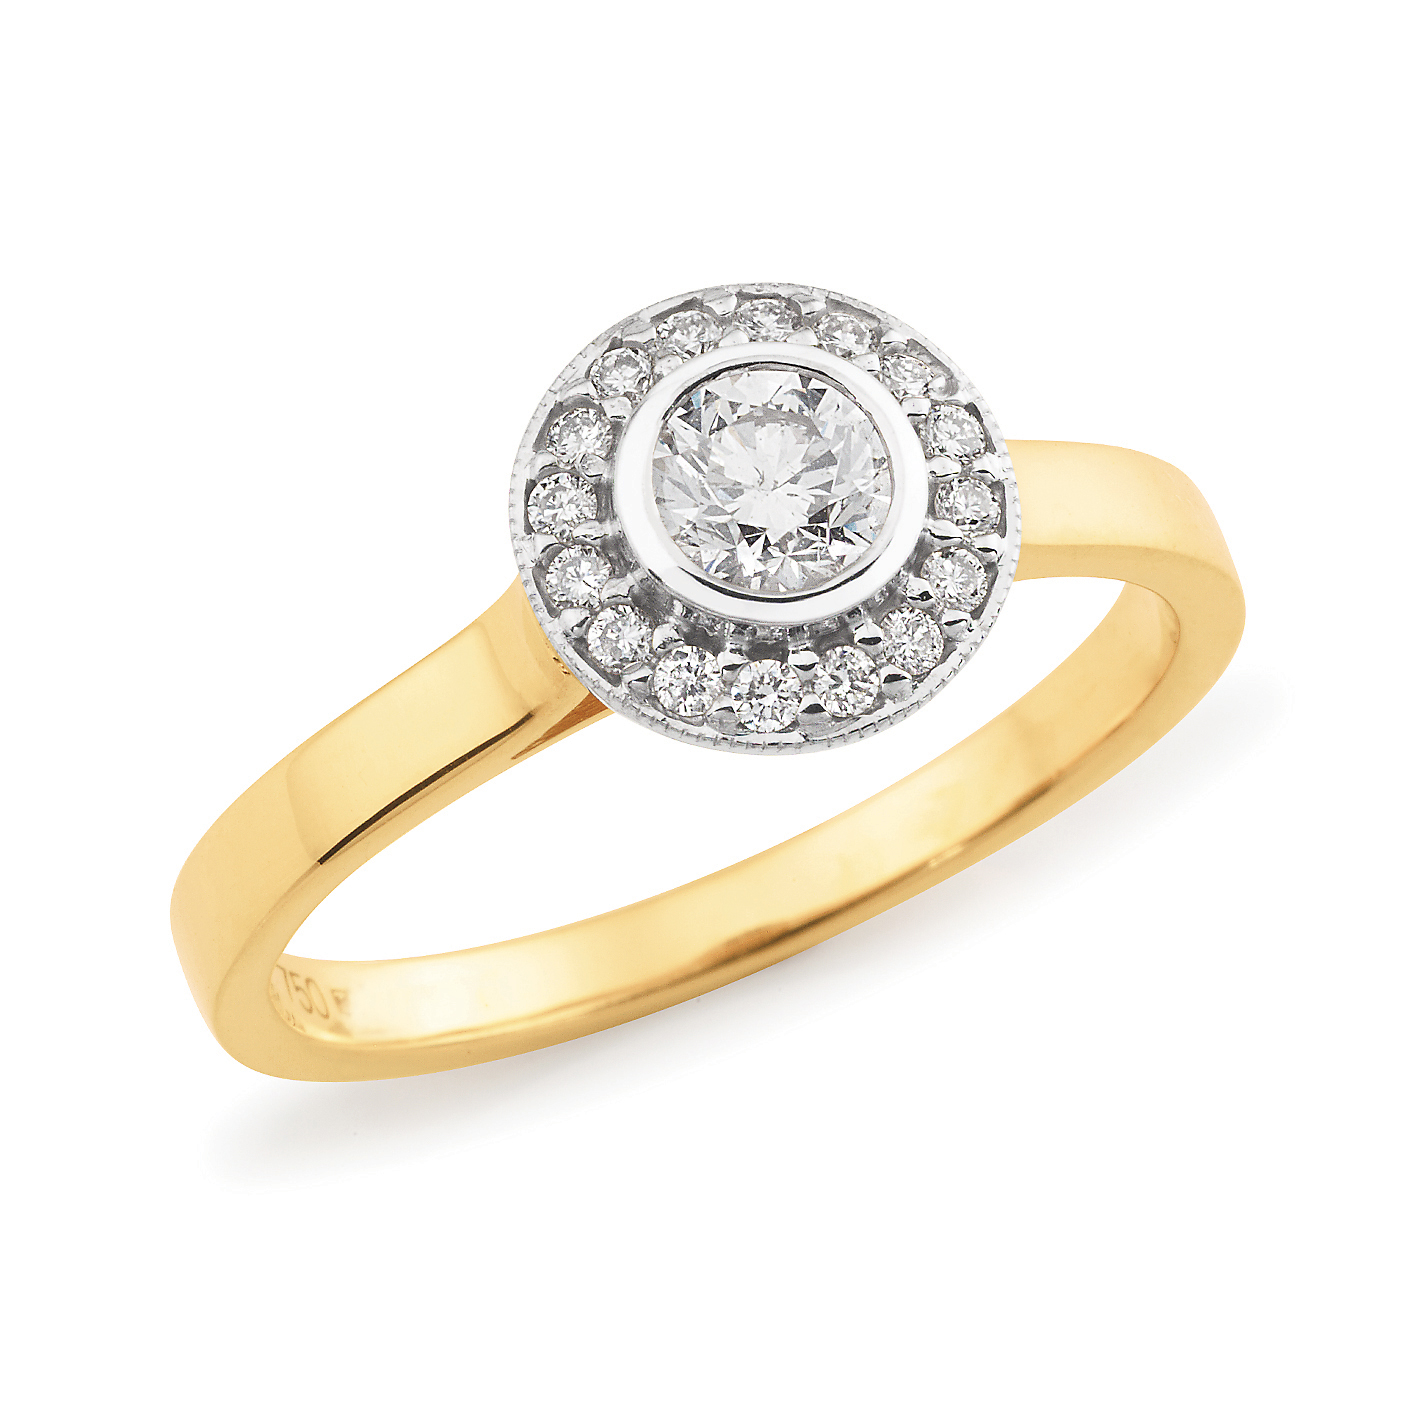 Diamond Set Halo Engagement Ring In 18ct Yellow White Gold Shop Kim Bartlett Master Jewellers Townsville Jeweller